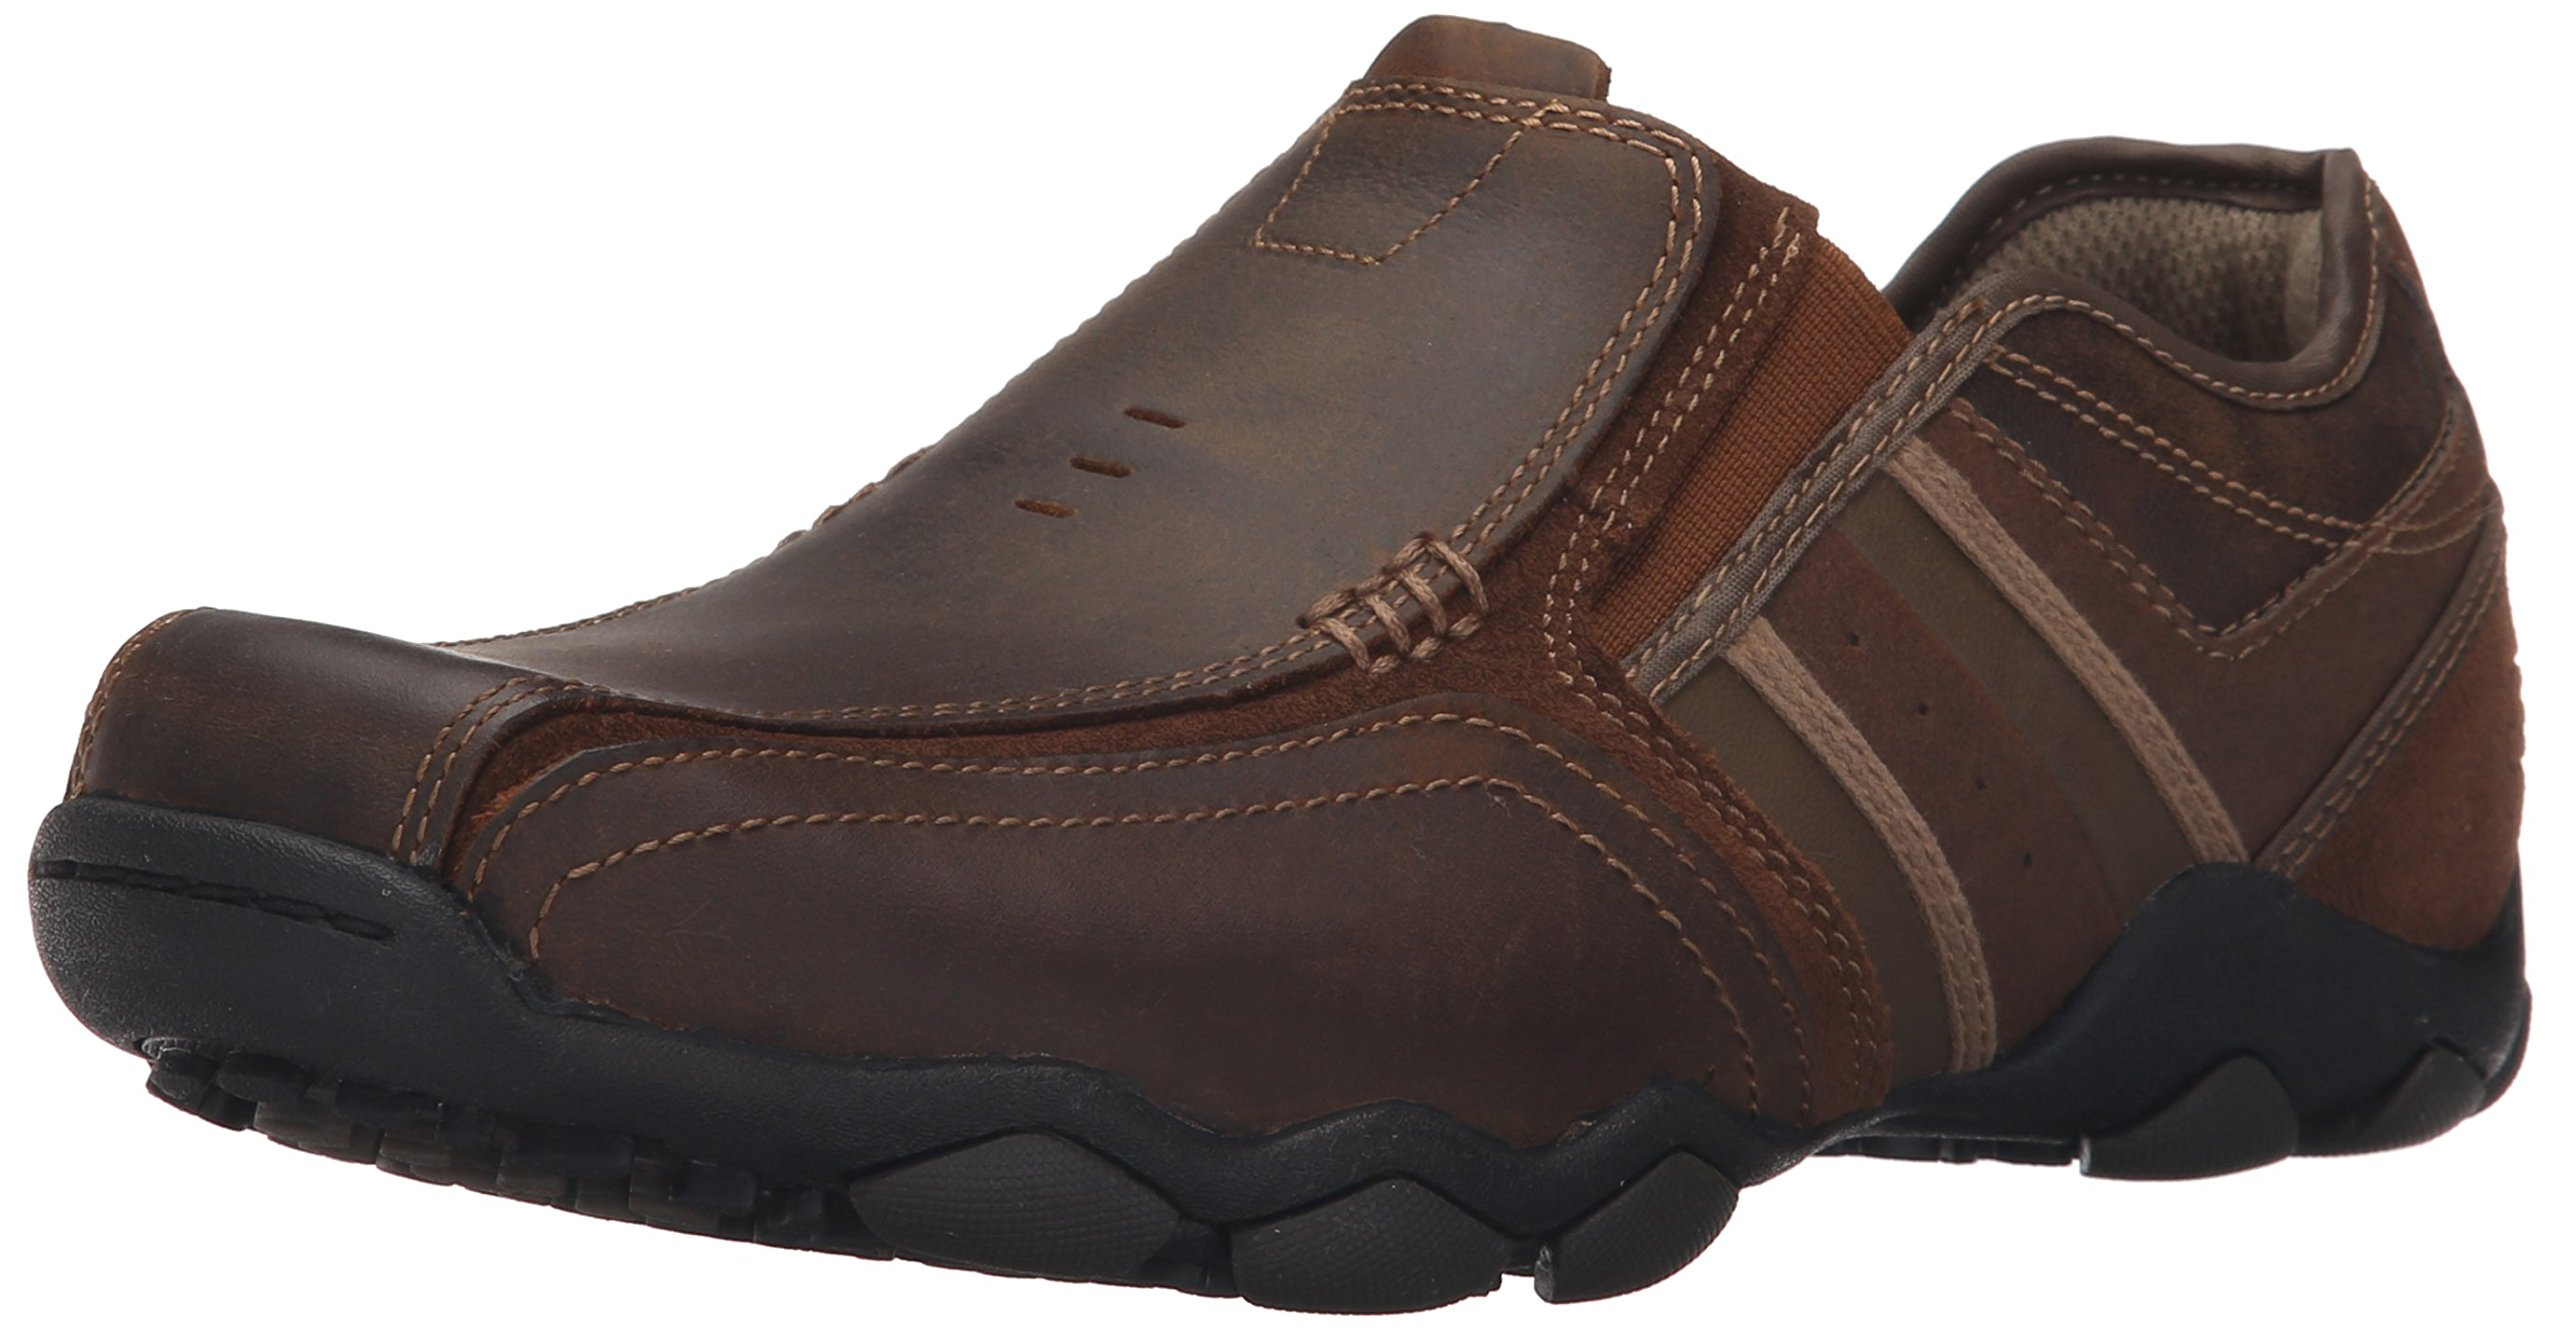 Skechers USA Men's Diameter-Zinroy Slip-On Loafer,11.5 2E US,Dark Brown